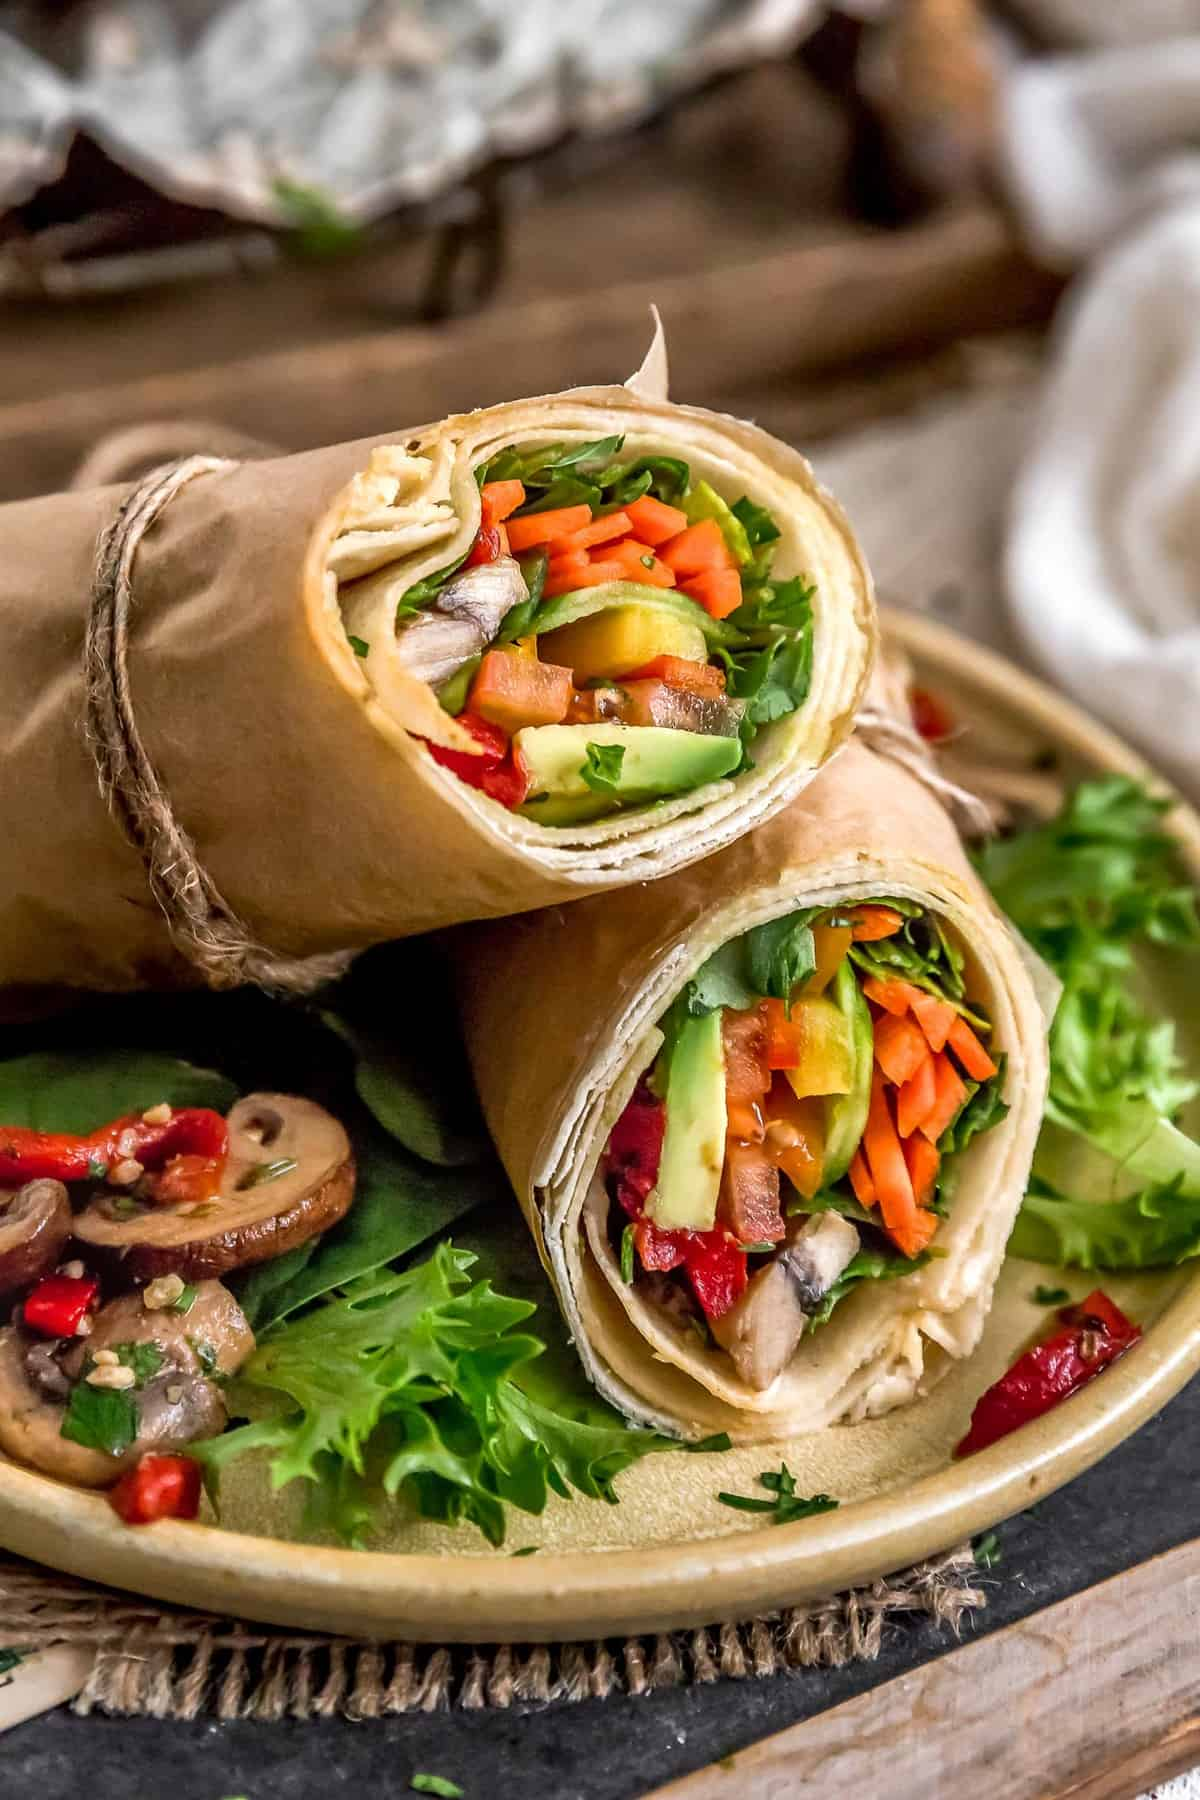 Deli-Style Marinated Mushroom Salad in a wrap